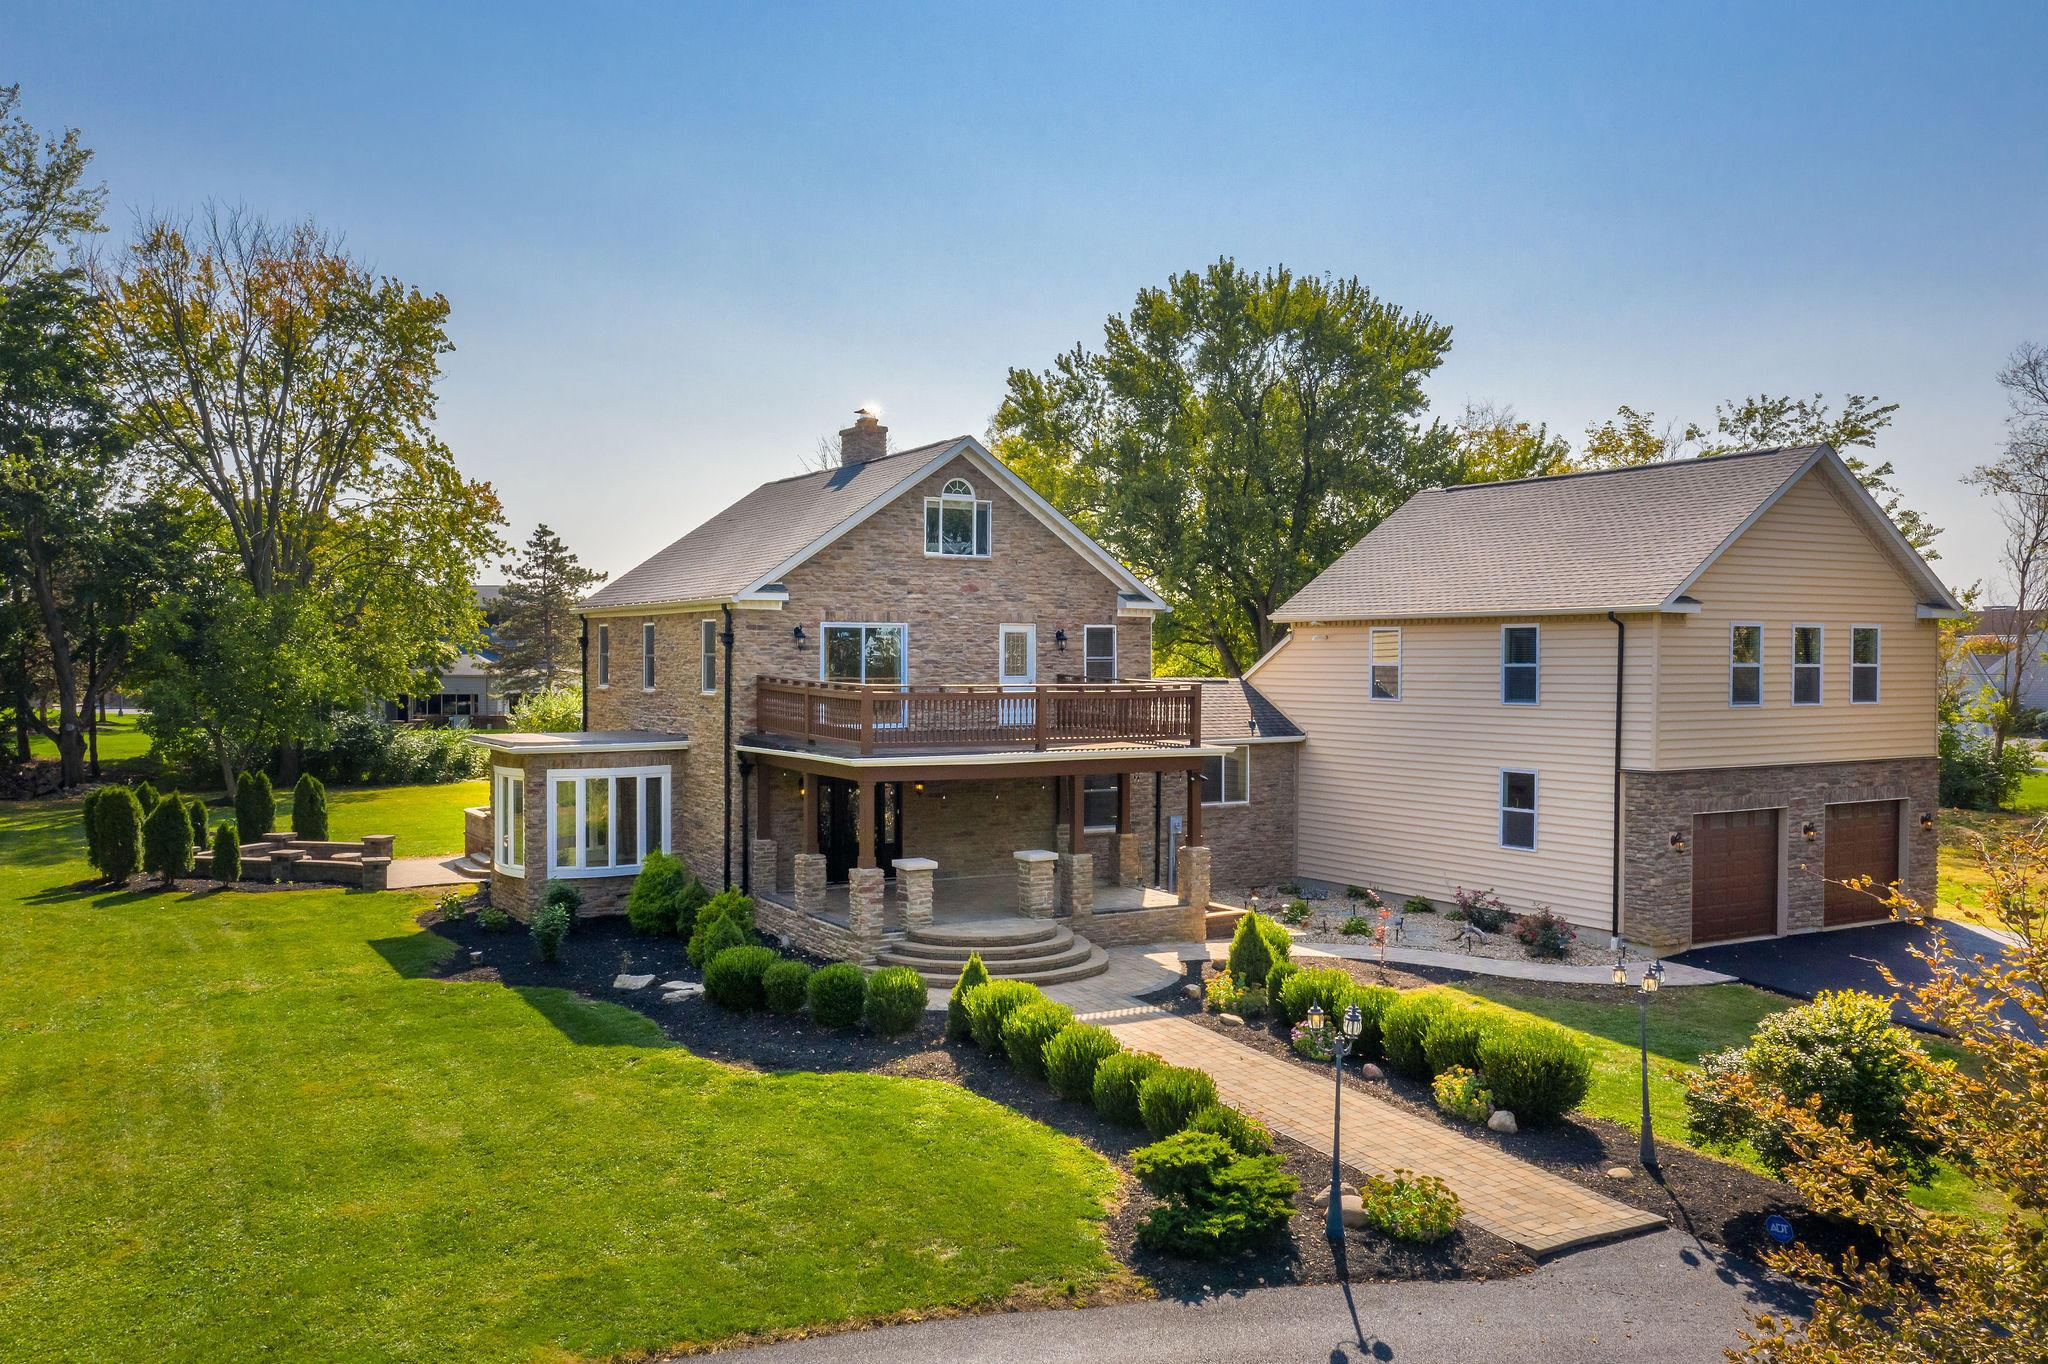 Photo of 3875 Smiley Road, Hilliard, OH 43026